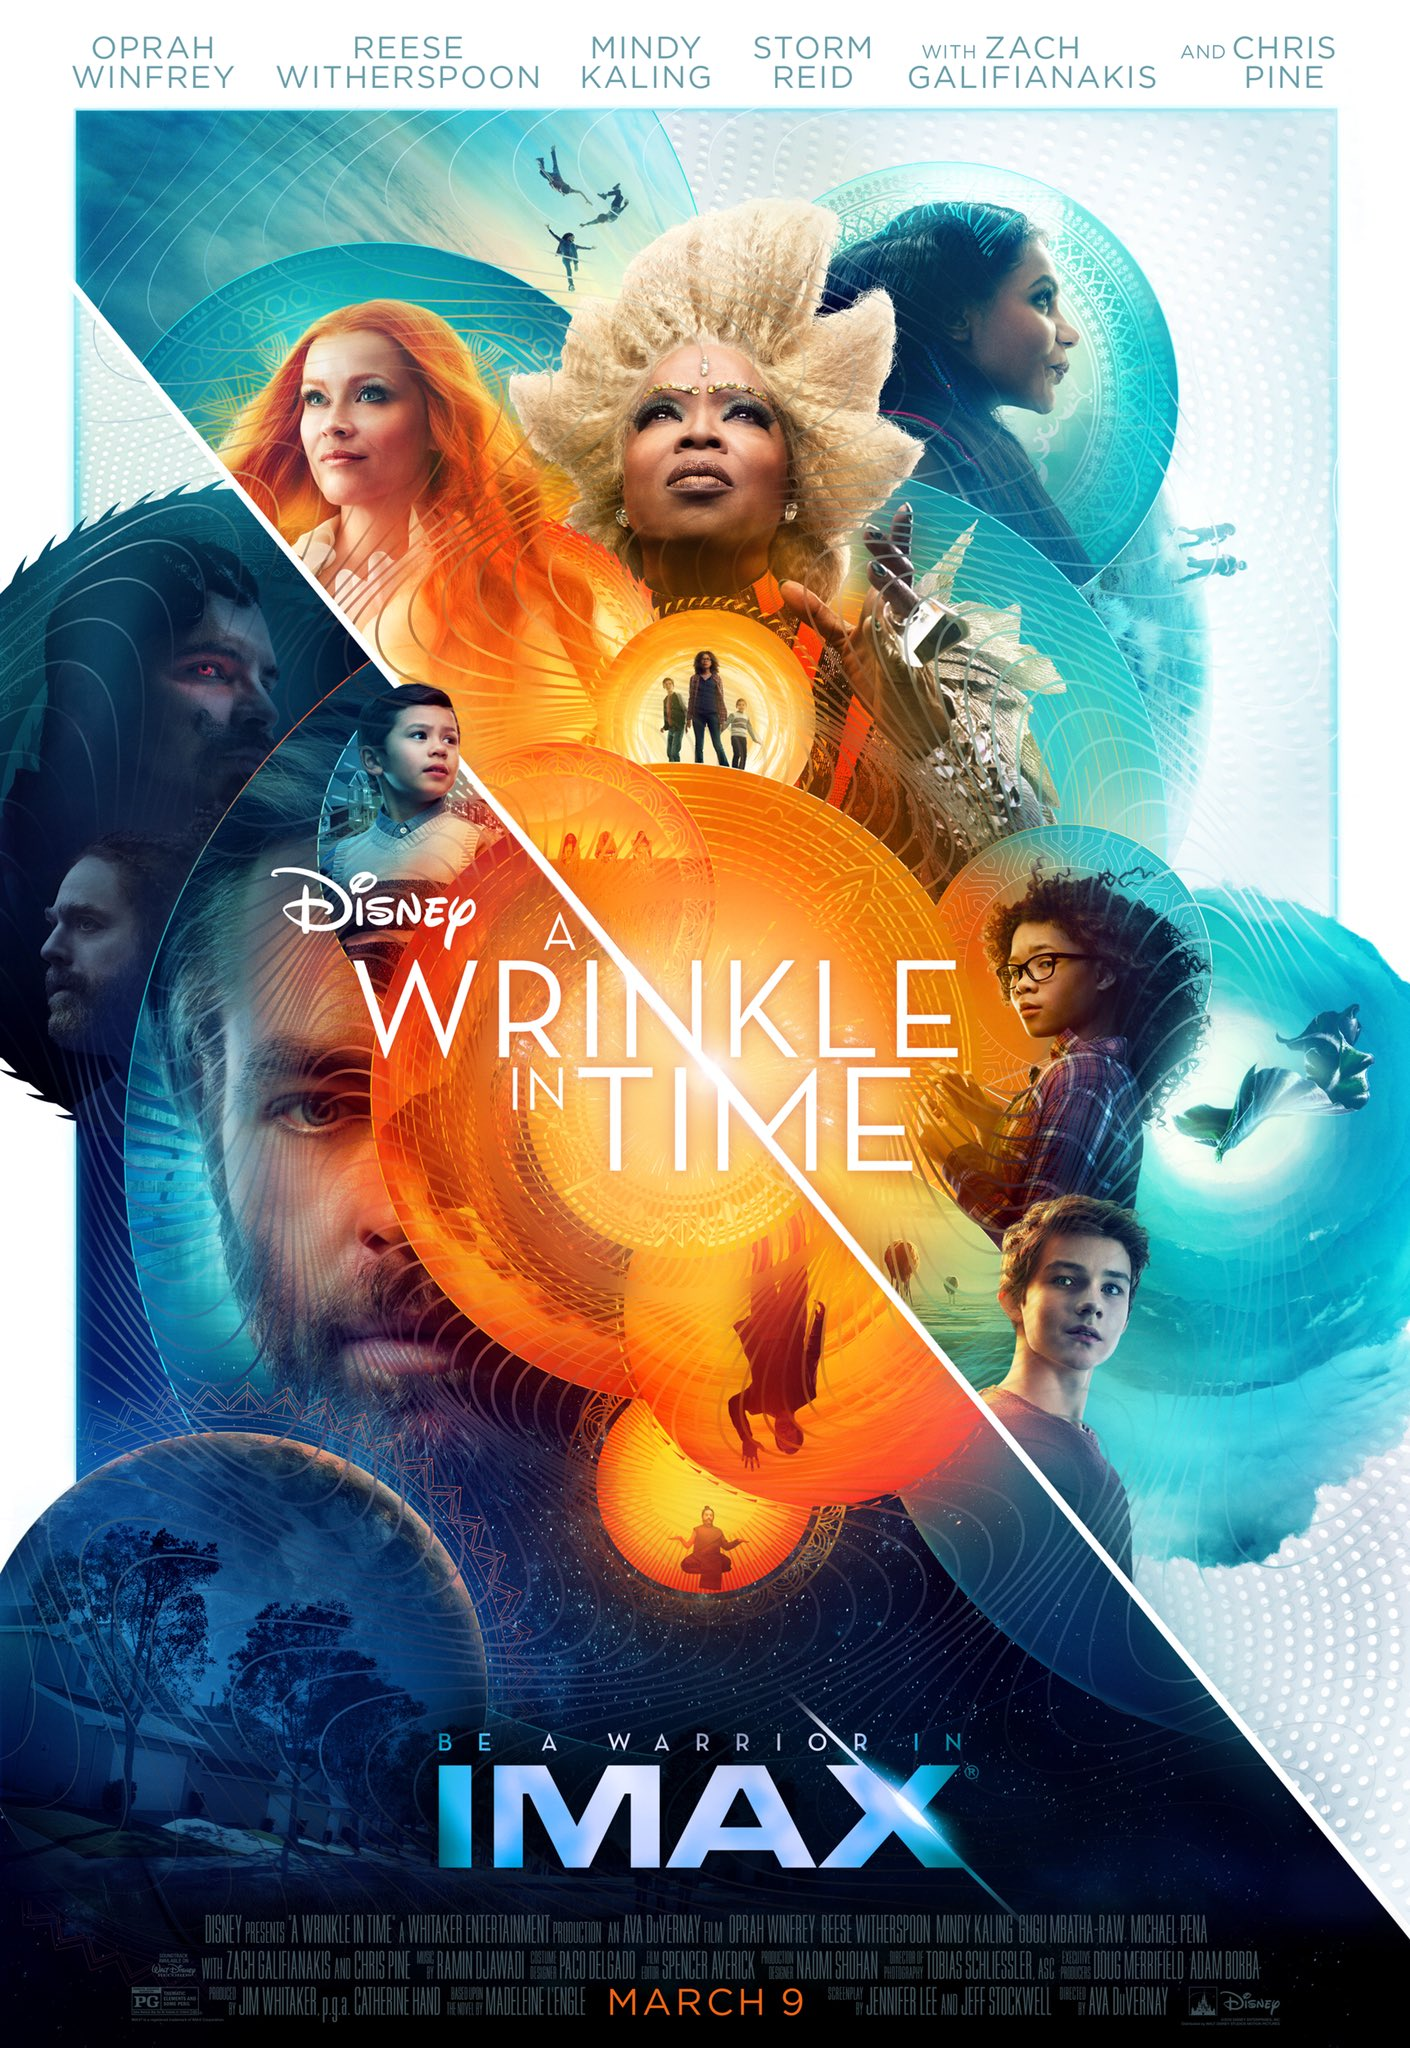 A Wrinkle in Time Details